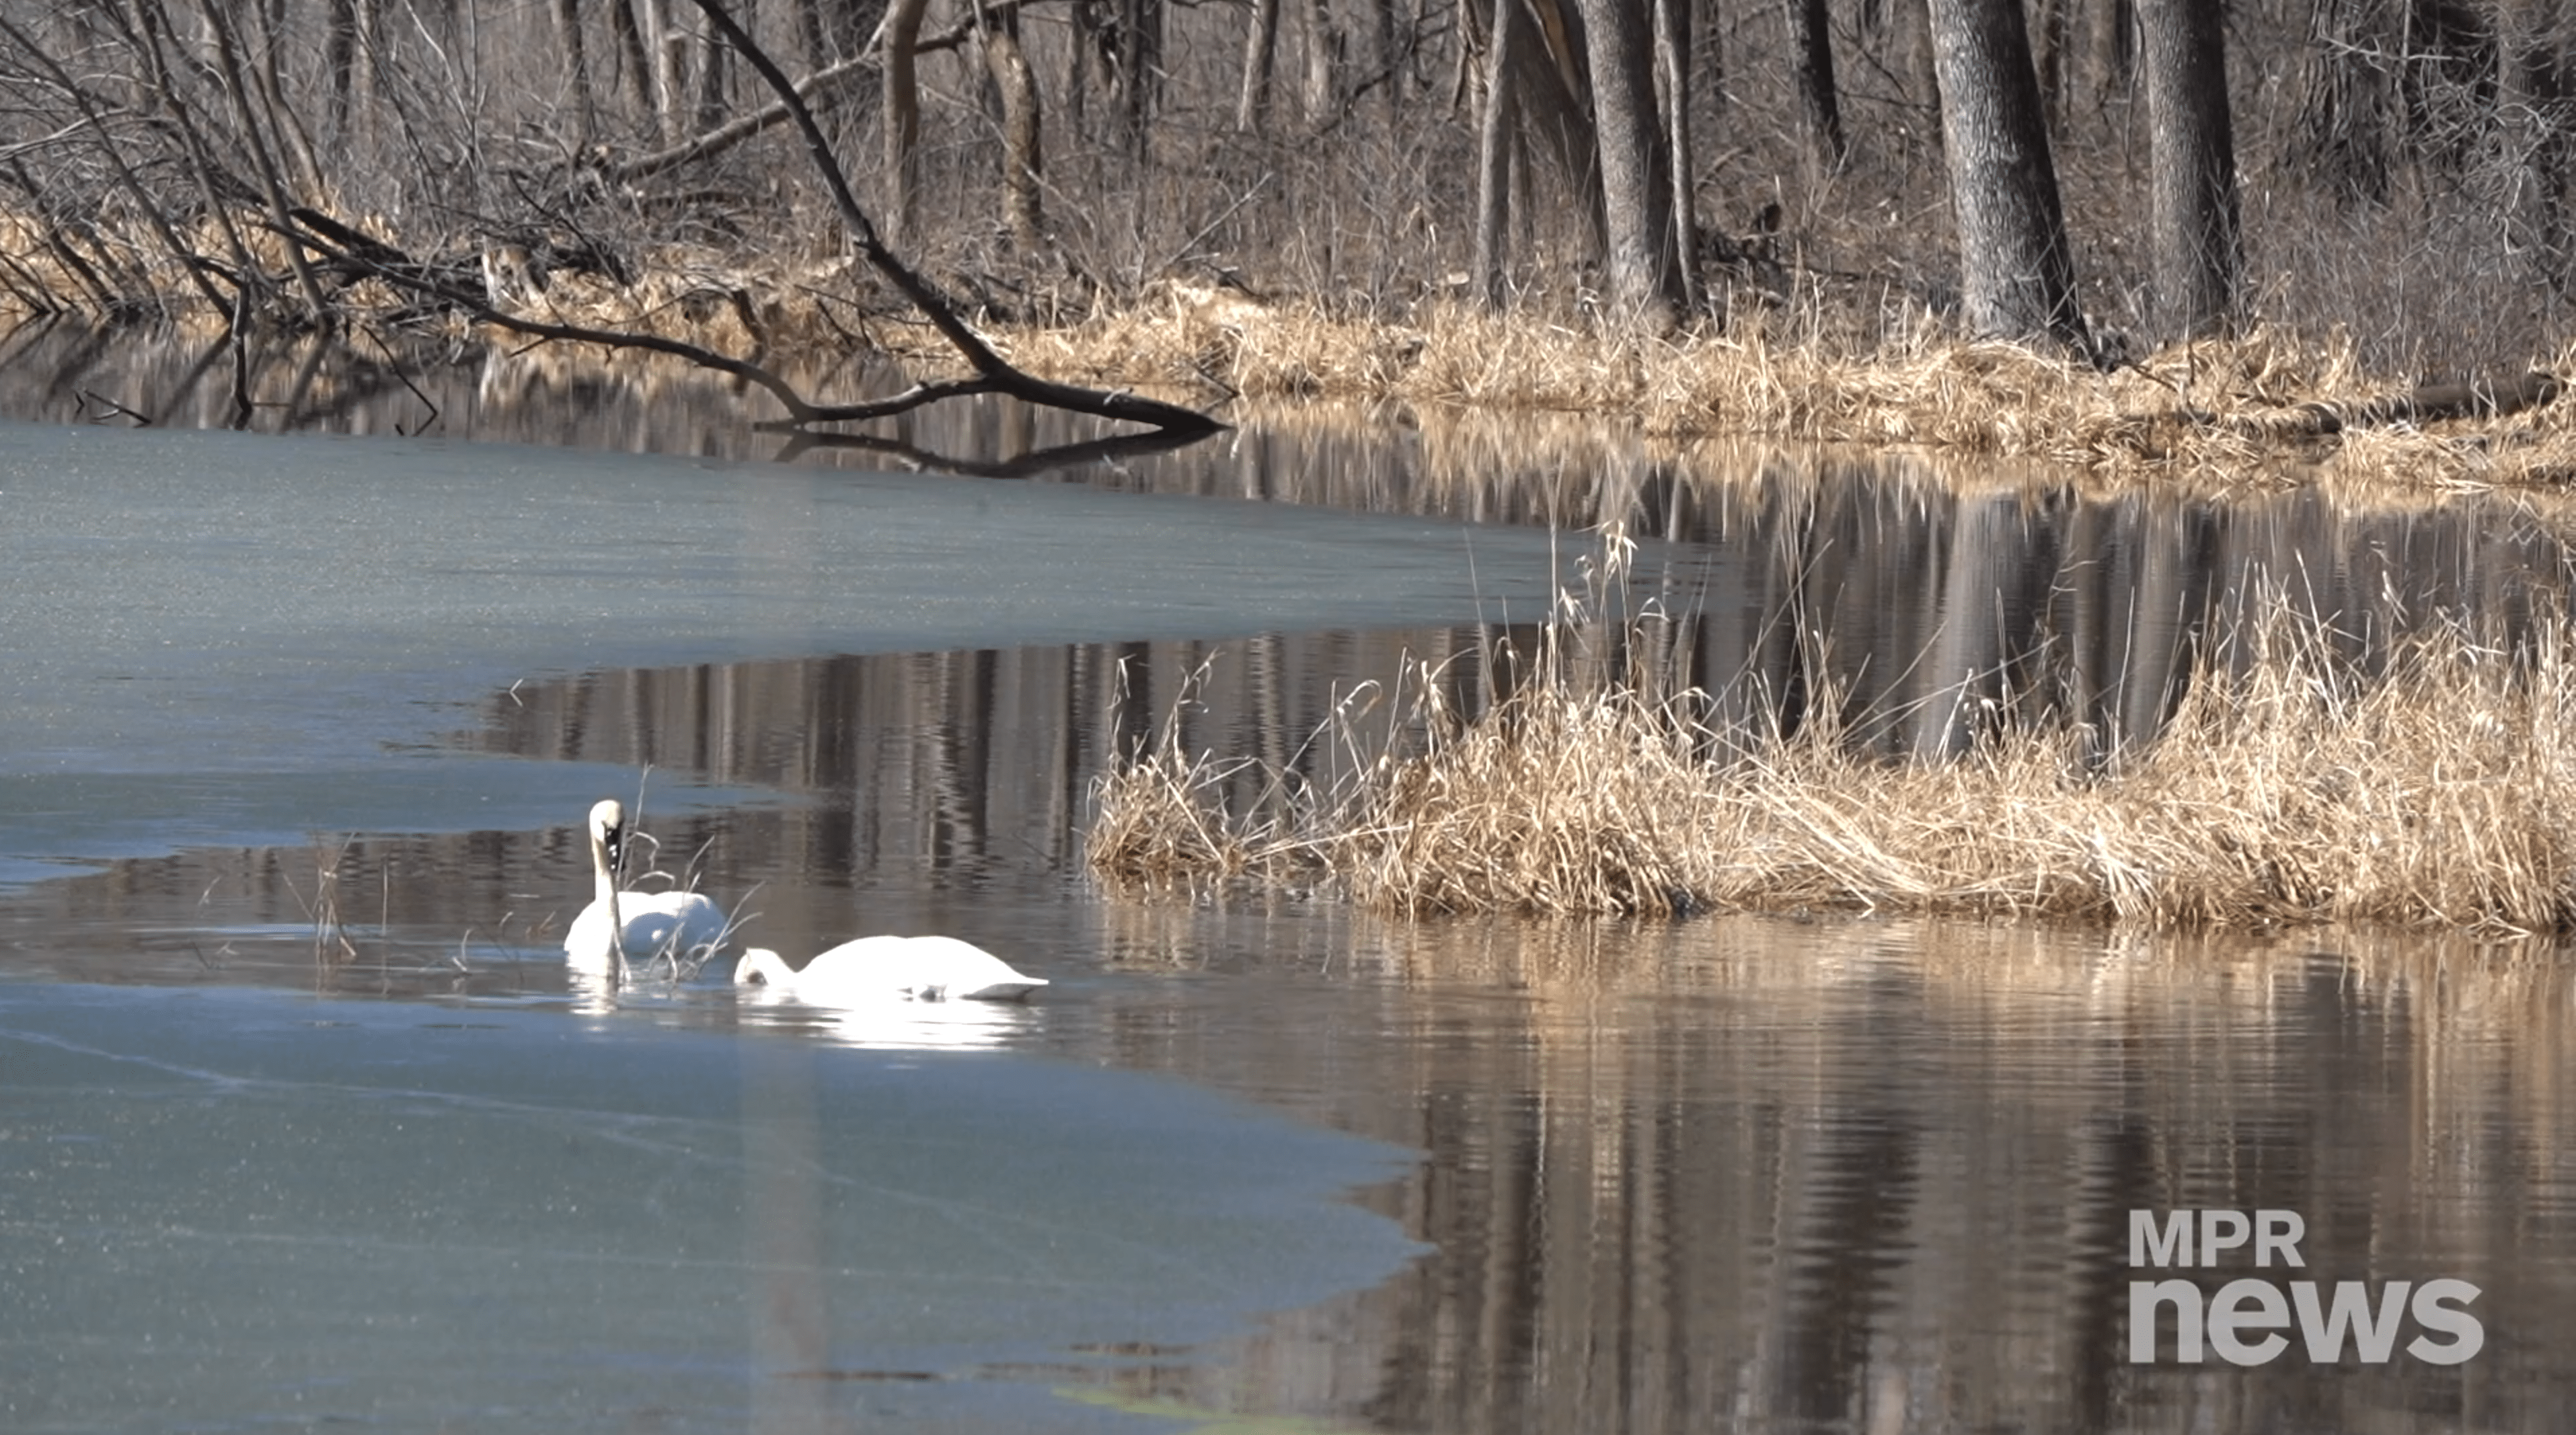 Two swans on a lake.